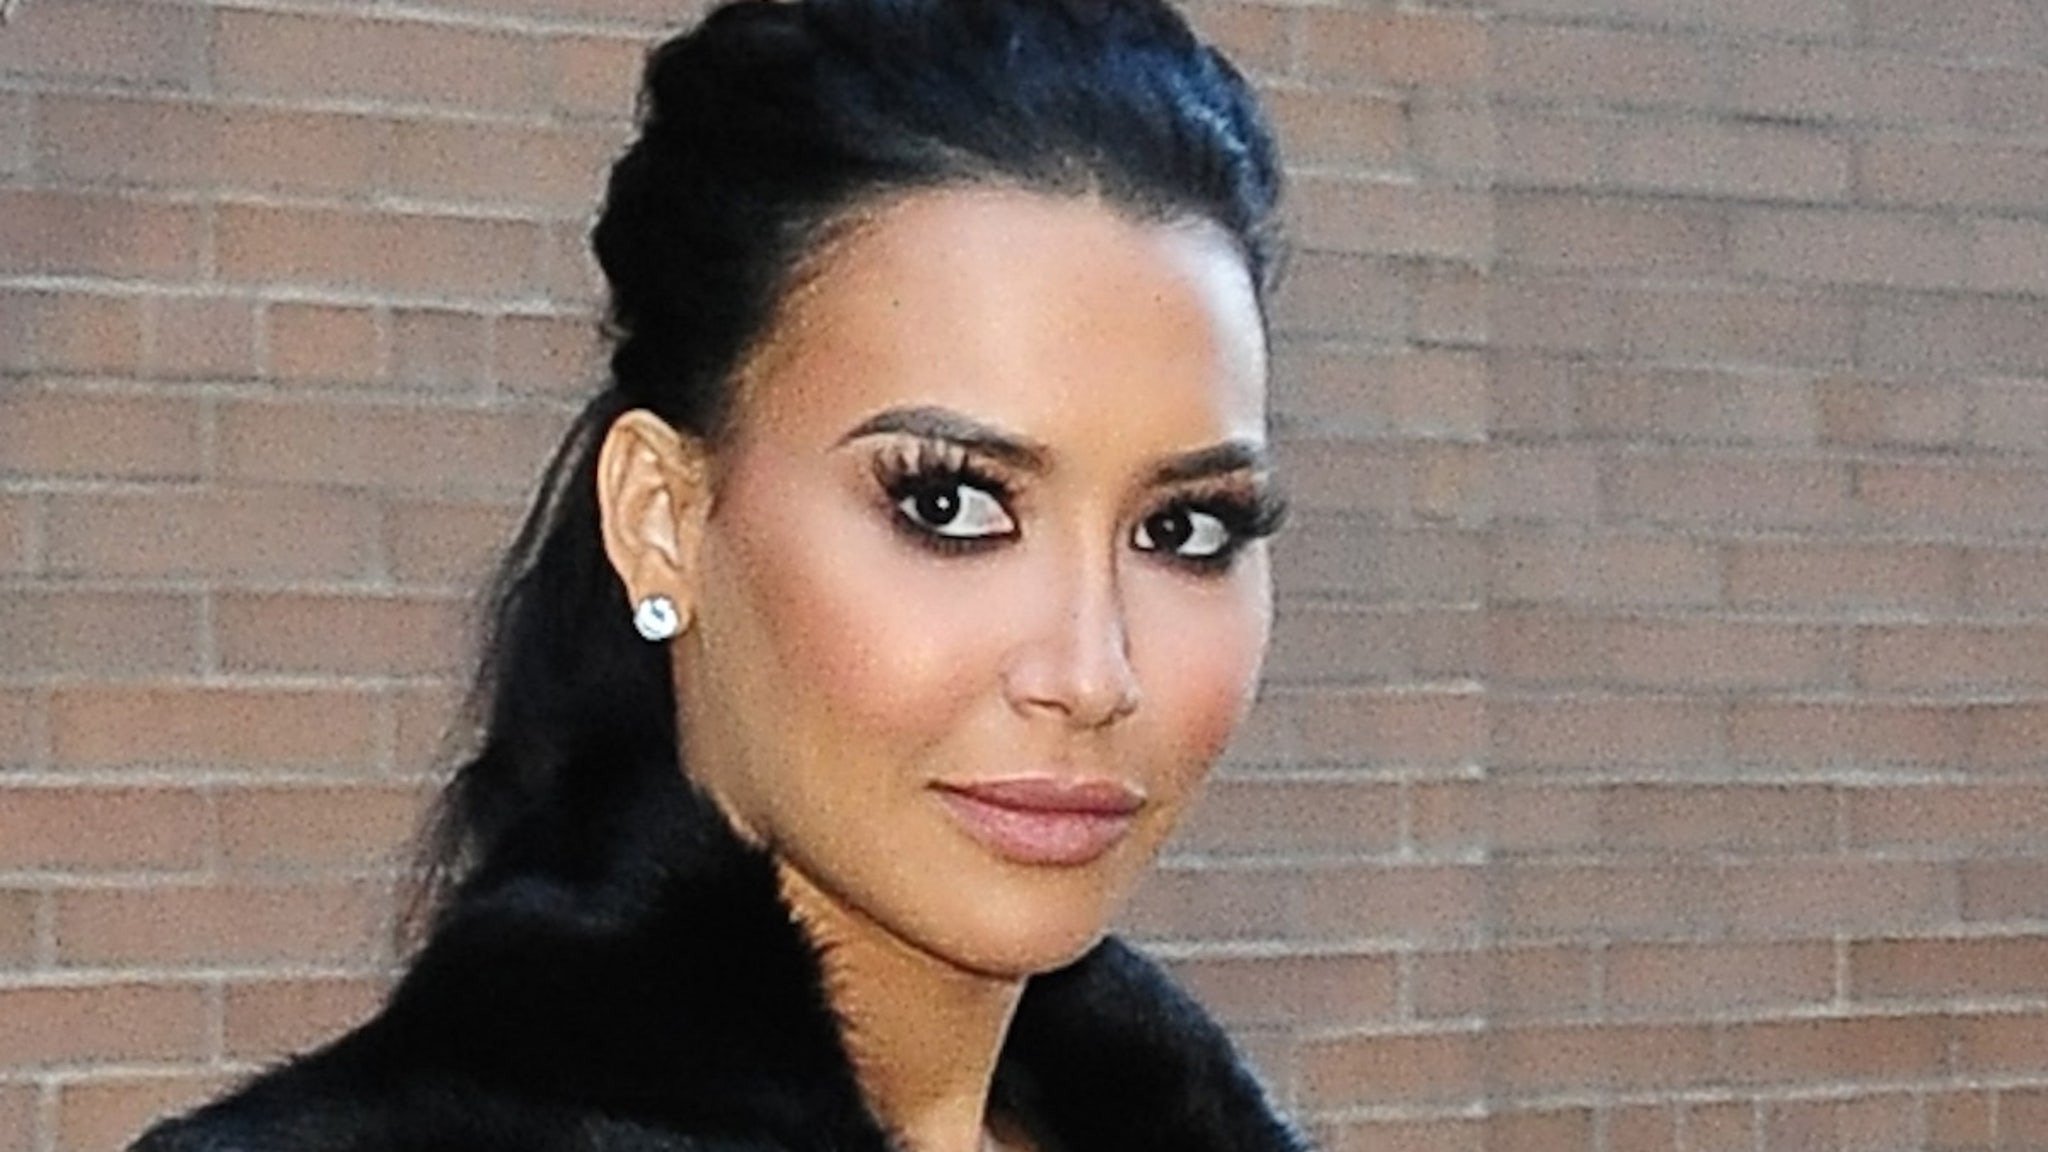 Naya Rivera Autopsy Completed No Signs of Drugs, Alcohol